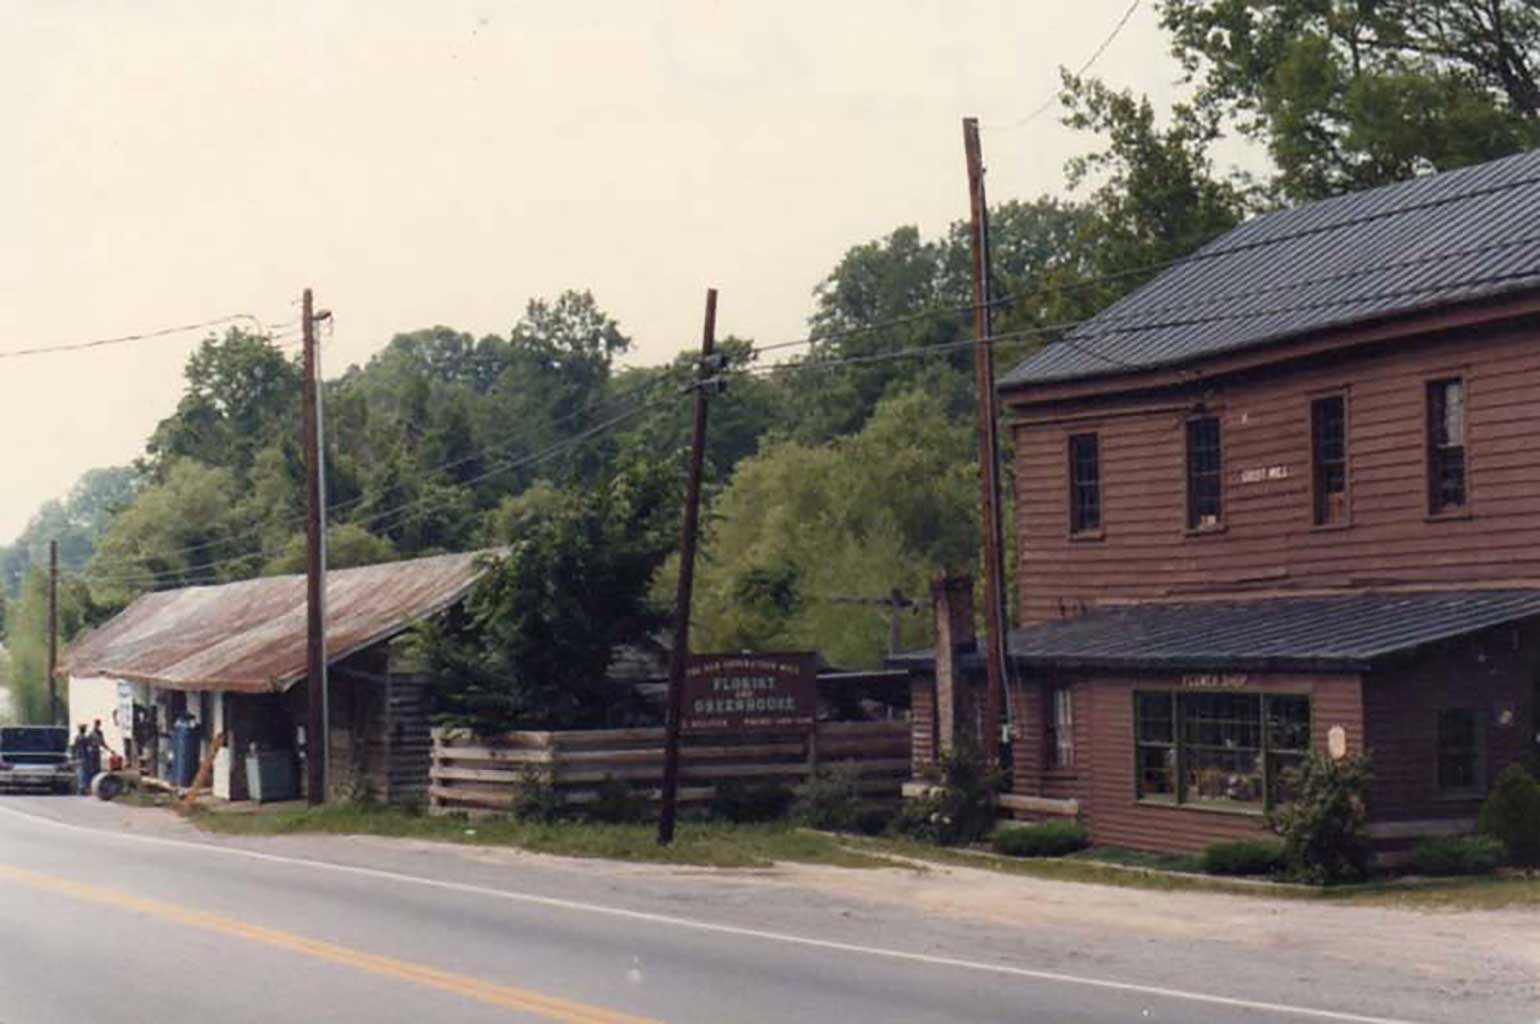 chuckatuck-ice-plant-and-grist-mill-1981-img277